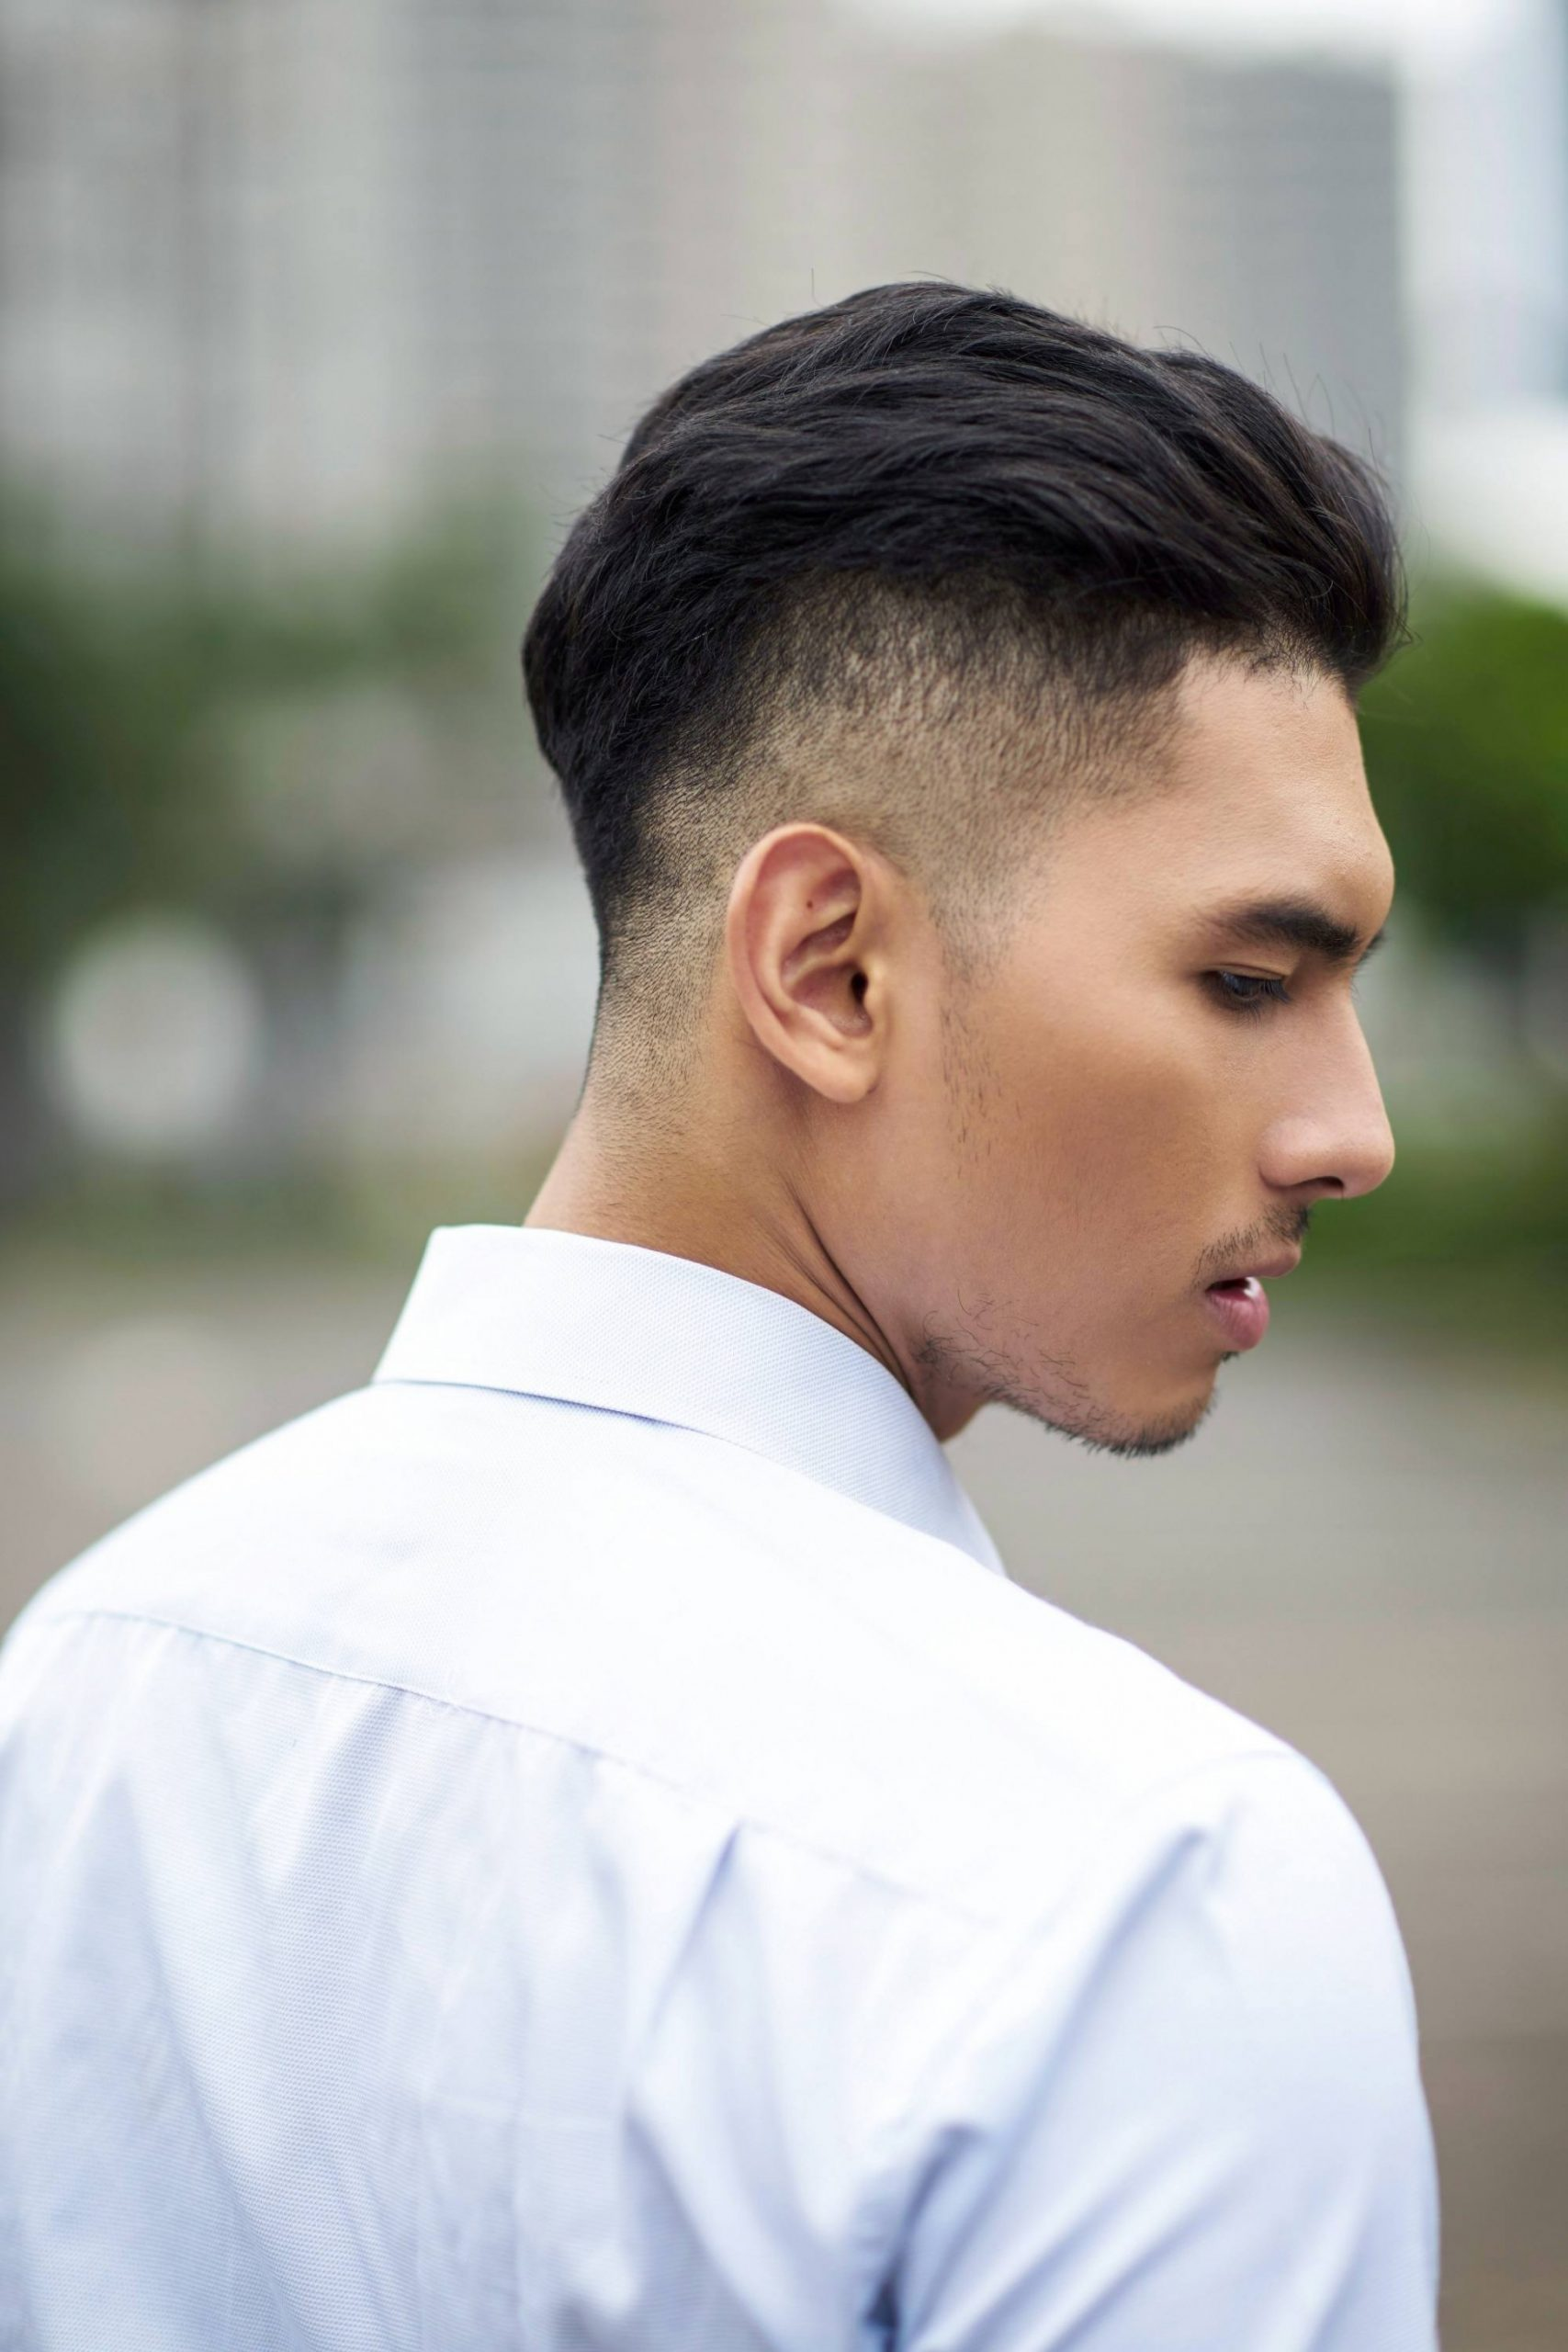 Best Hairstyles for Men with Round Faces  All Things Hair PH